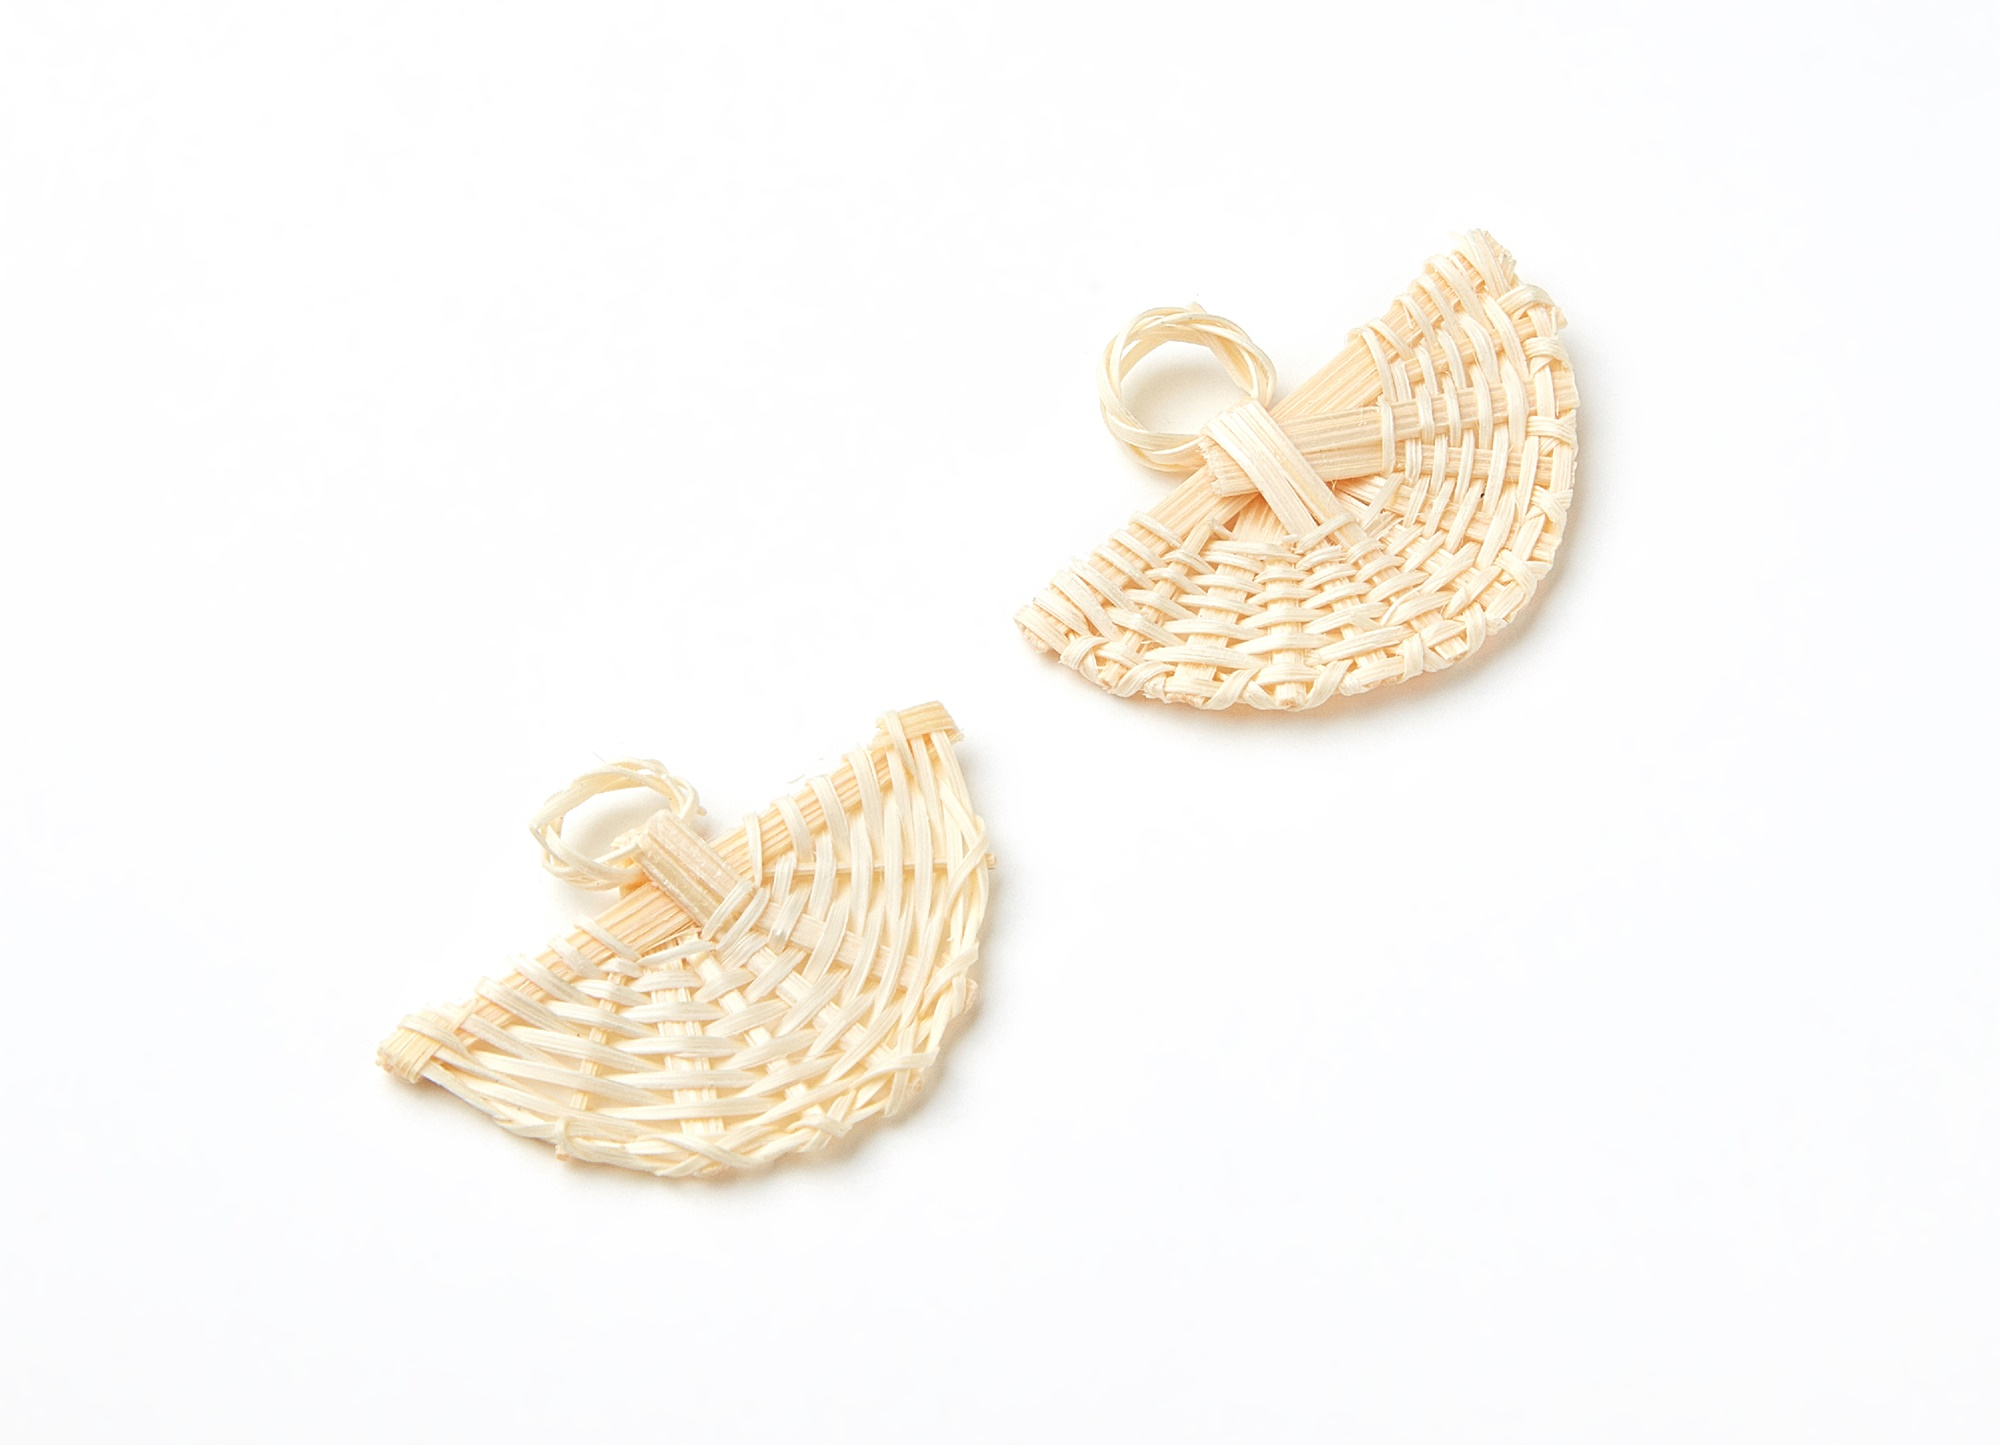 Handwoven <font><b>Fun</b></font> Rattan Charms - <font><b>Fun</b></font> Shaped Rattan Pendant - Wooden Straw Earrings - 2pcs/<font><b>lot</b></font> - 41.07x30.94x4mm - RT1002 image